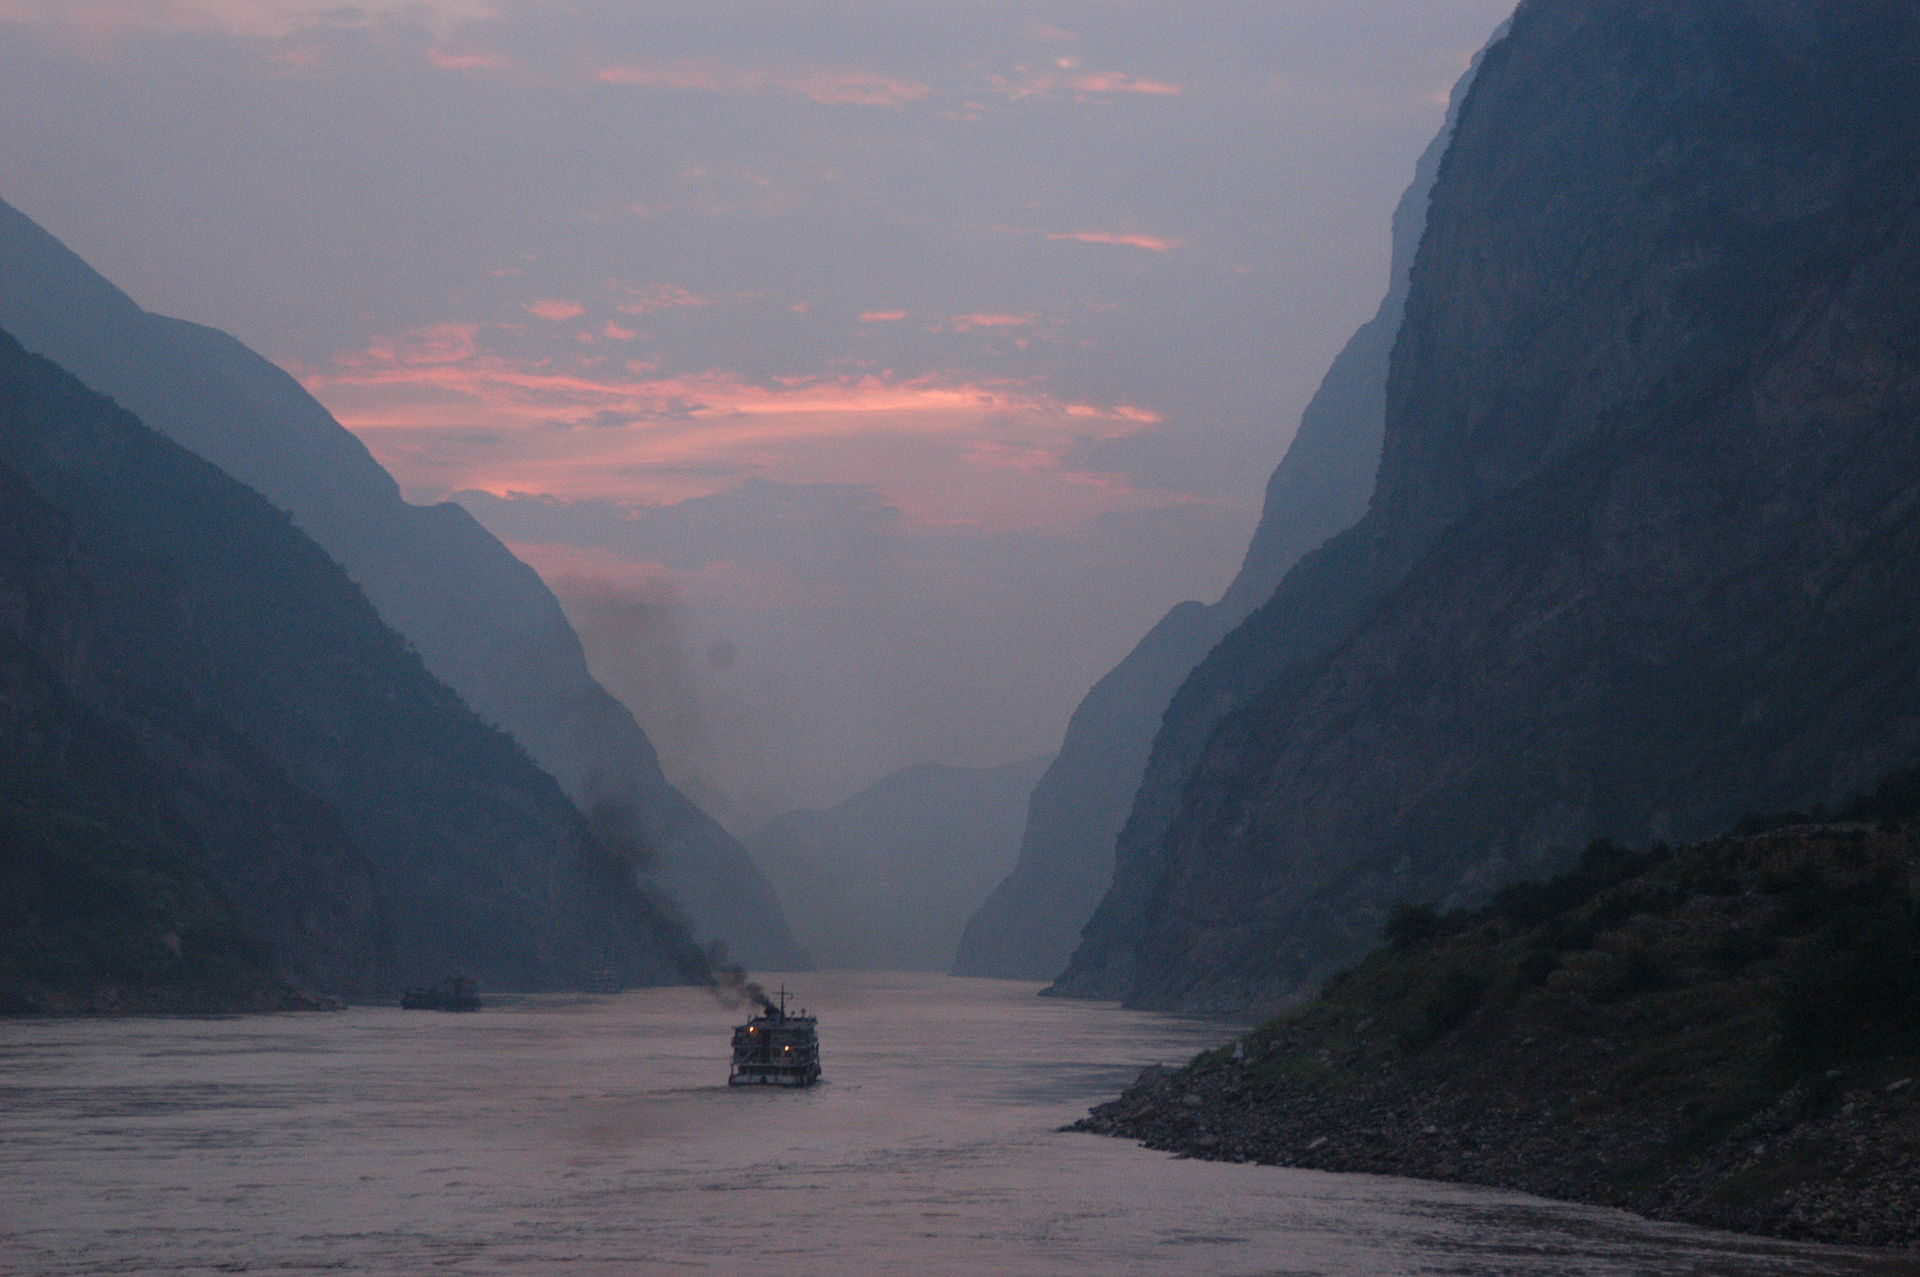 Dusk_on_the_Yangtze_River.jpg